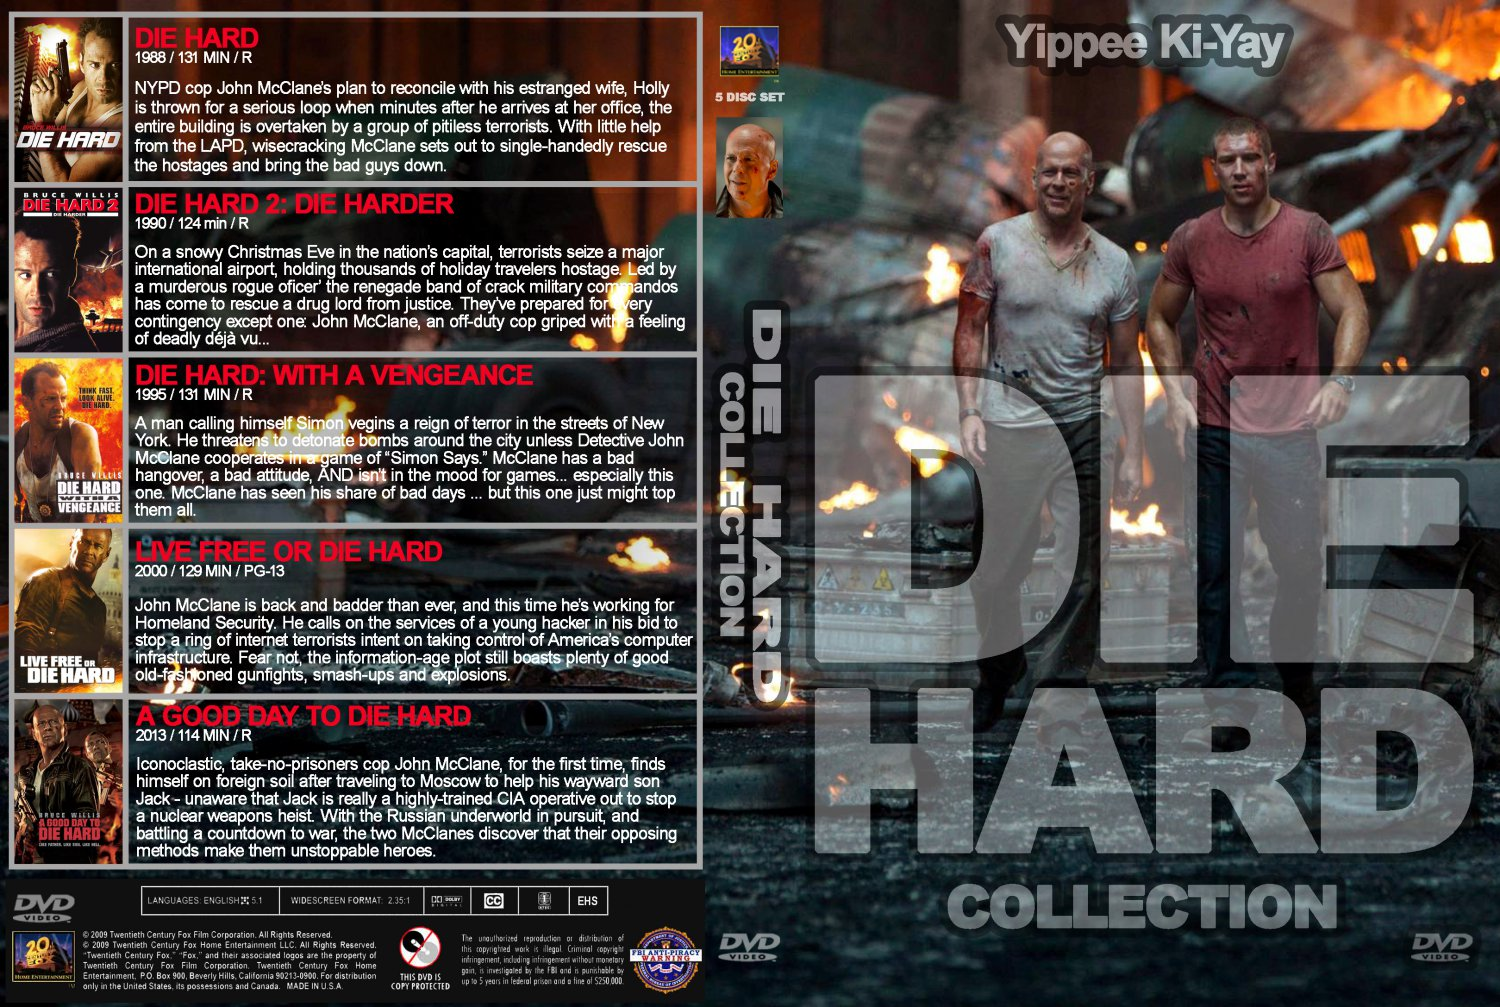 die hard collection movie dvd custom covers die hard collection v1 dvd covers. Black Bedroom Furniture Sets. Home Design Ideas